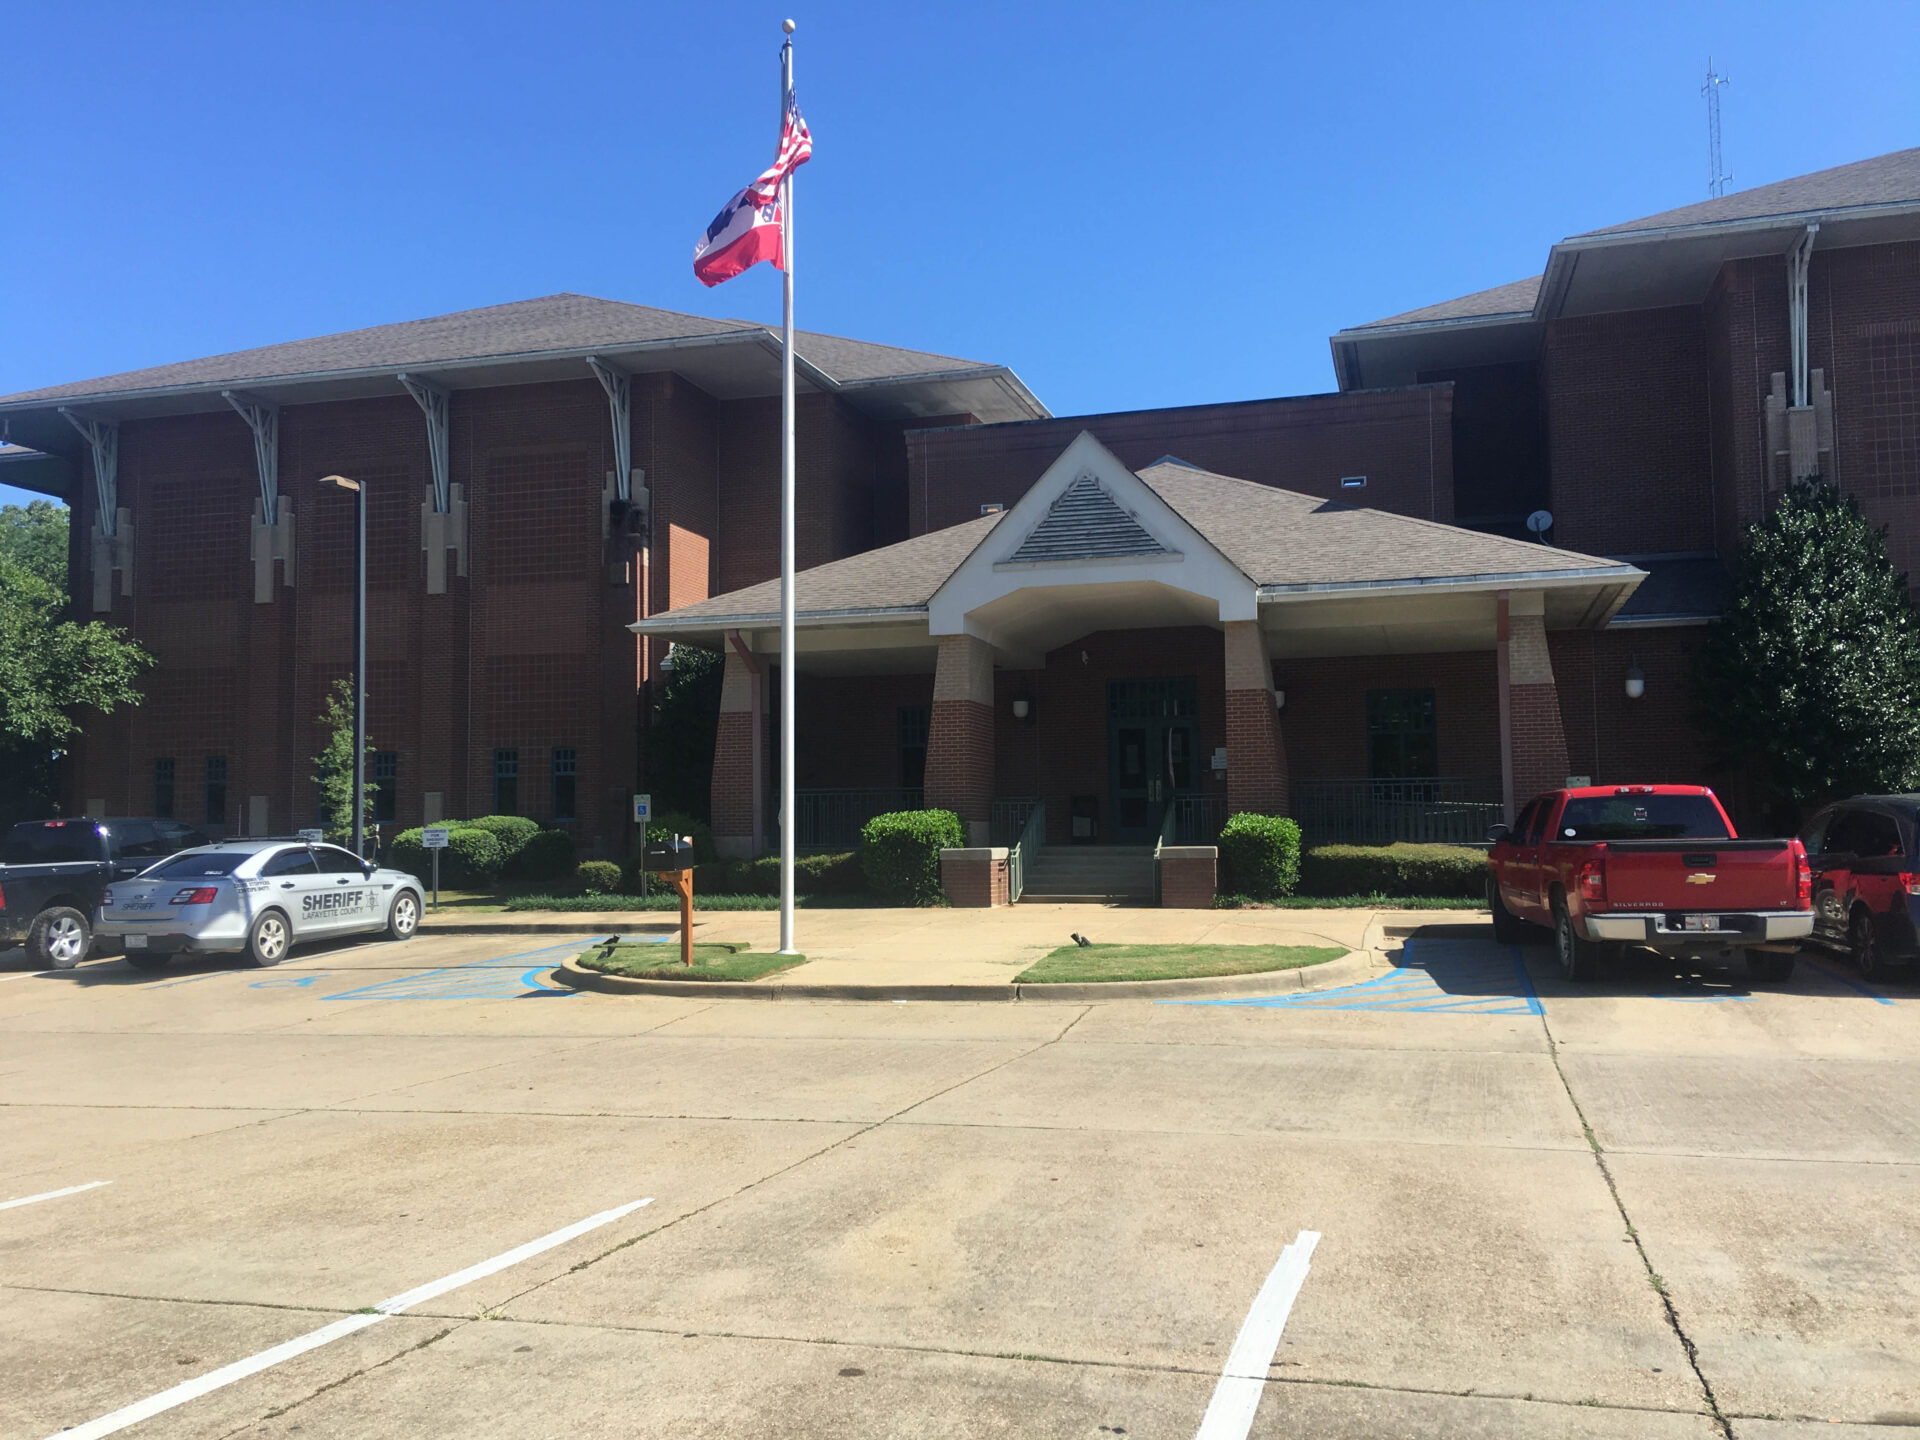 Sheriff's Department to Move Out of Detention Center - HottyToddy.com